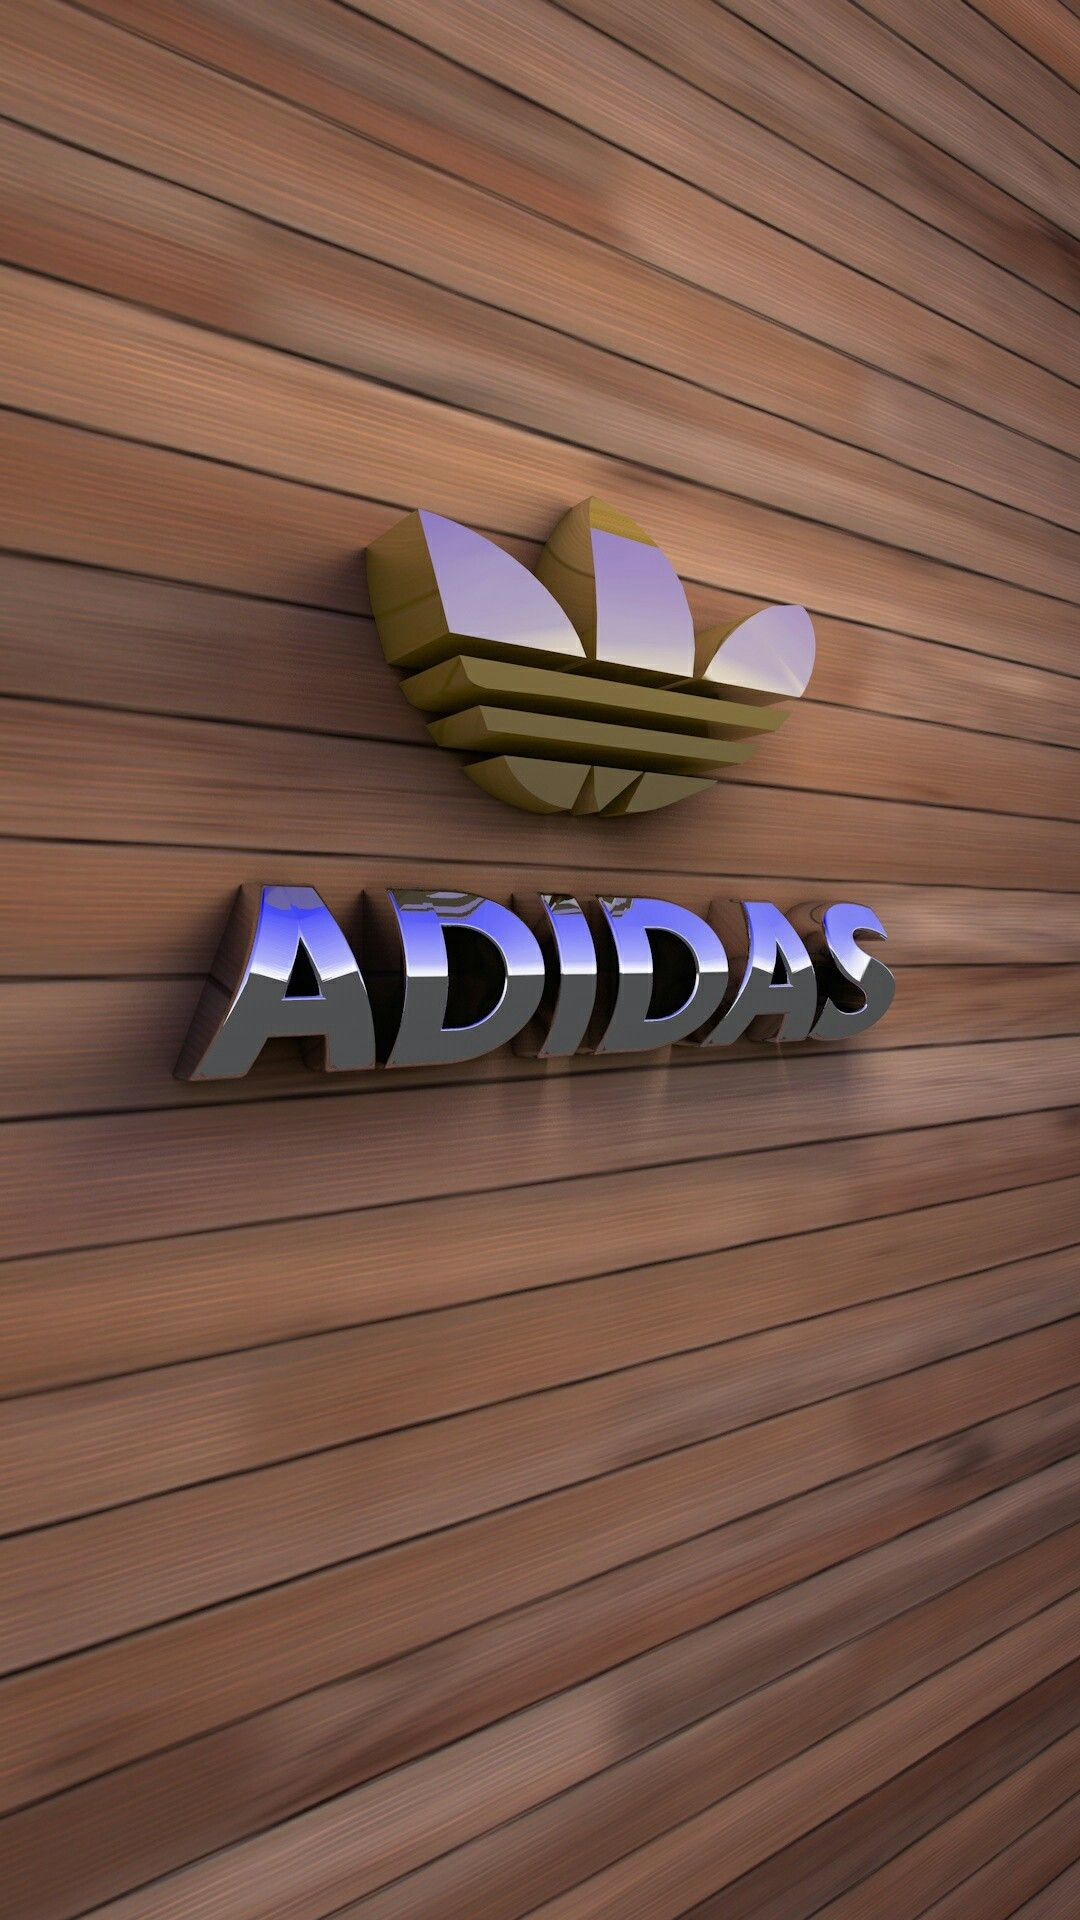 1080x1920 Adidas Wallpaper Brands Other Wallpapers) – HD Wallpapers